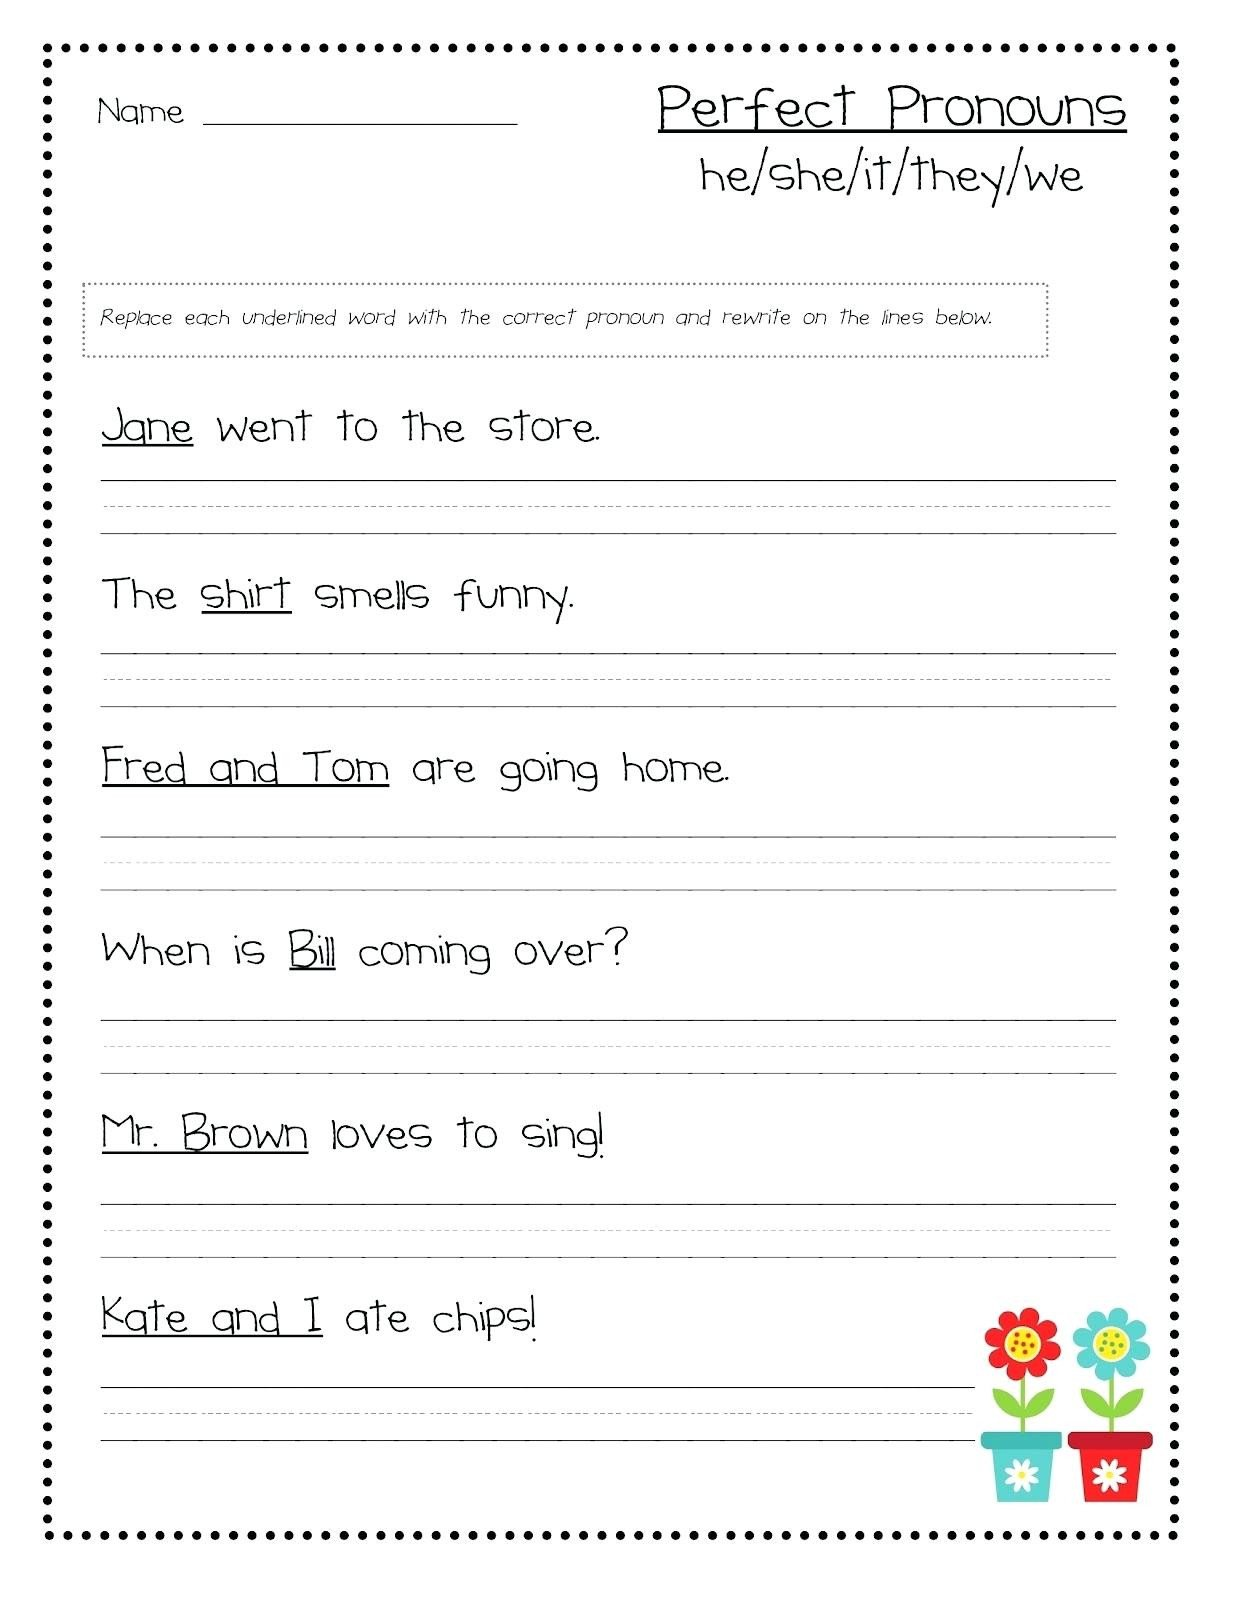 Pronoun Worksheets 2nd Grade Pronoun Worksheets Fourth Grade